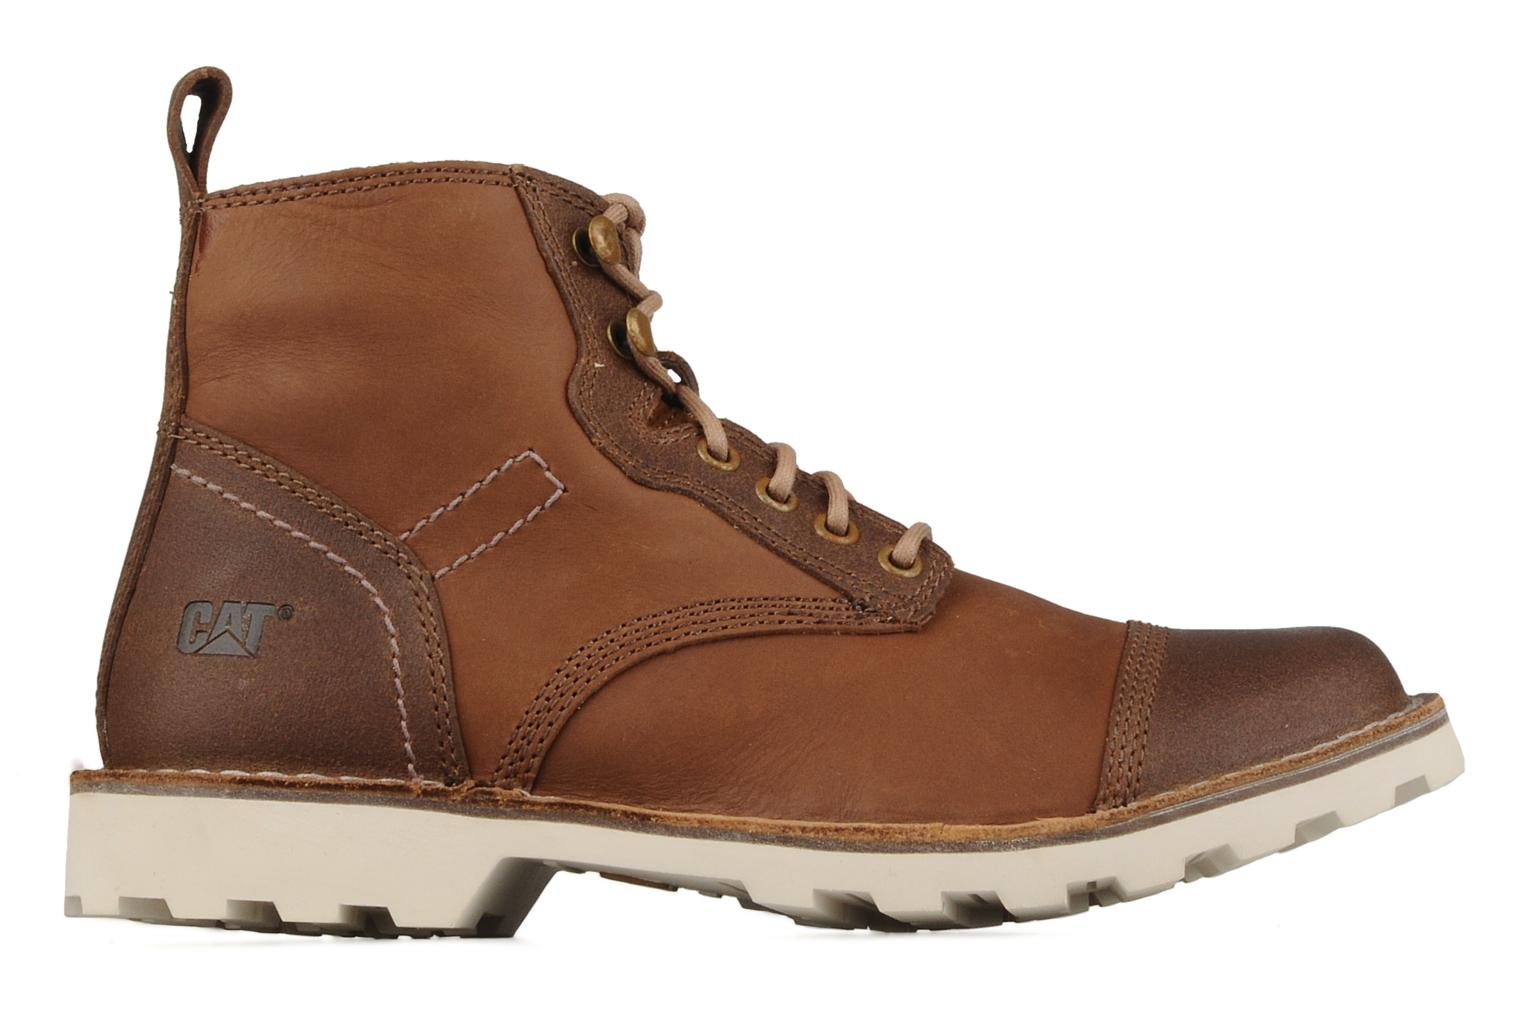 Caterpillar Fulcrum mid Ankle boots in Brown at Sarenza.co ...